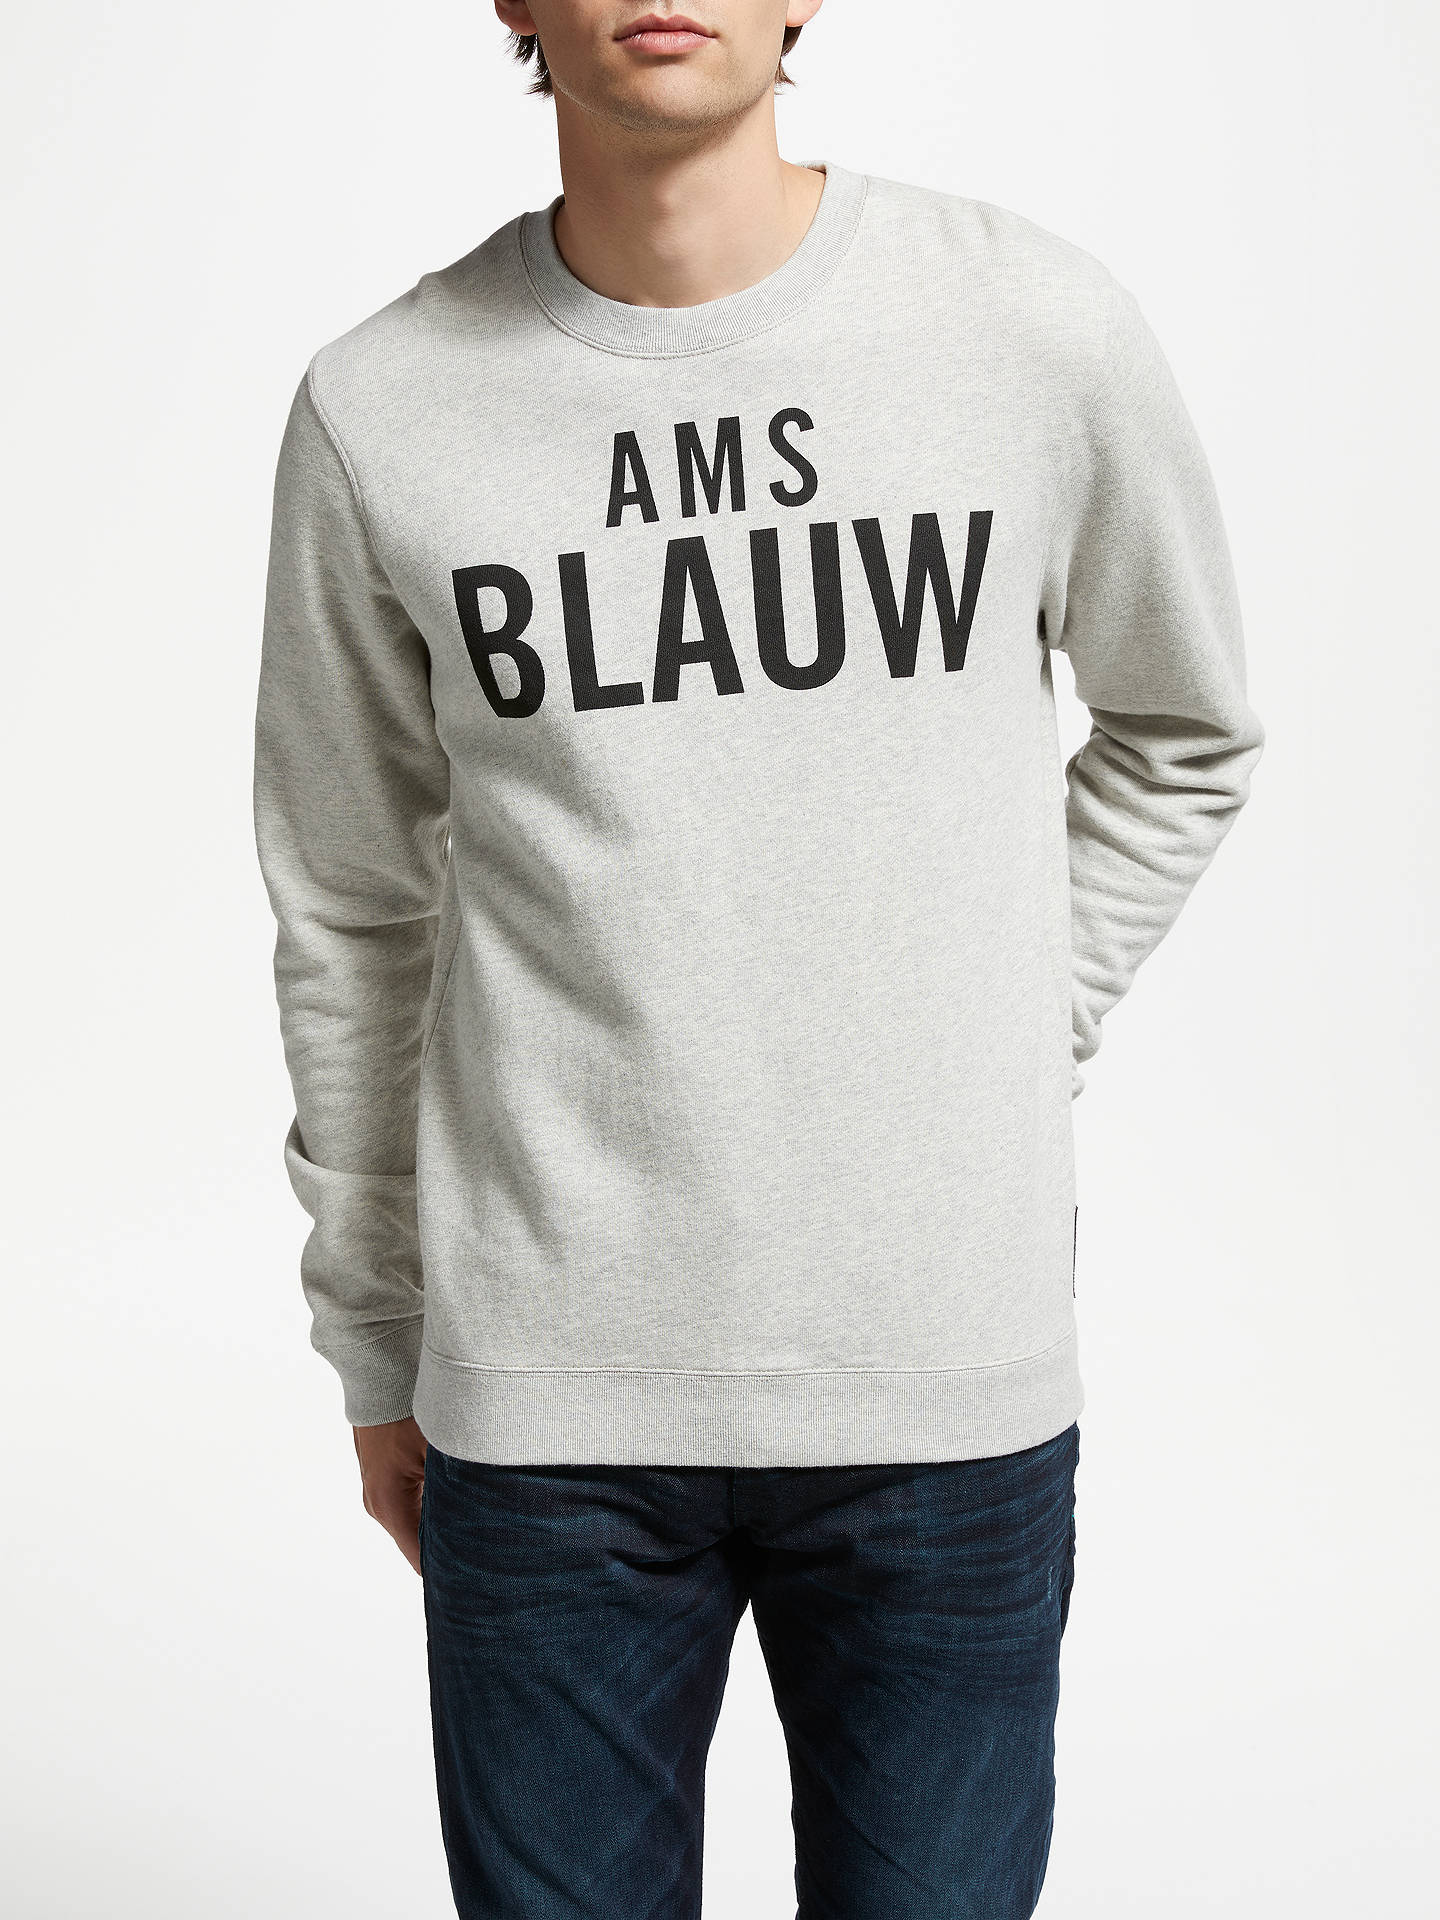 Buy Scotch & Soda Ams Blauw Sweatshirt, Grey, M Online at johnlewis.com